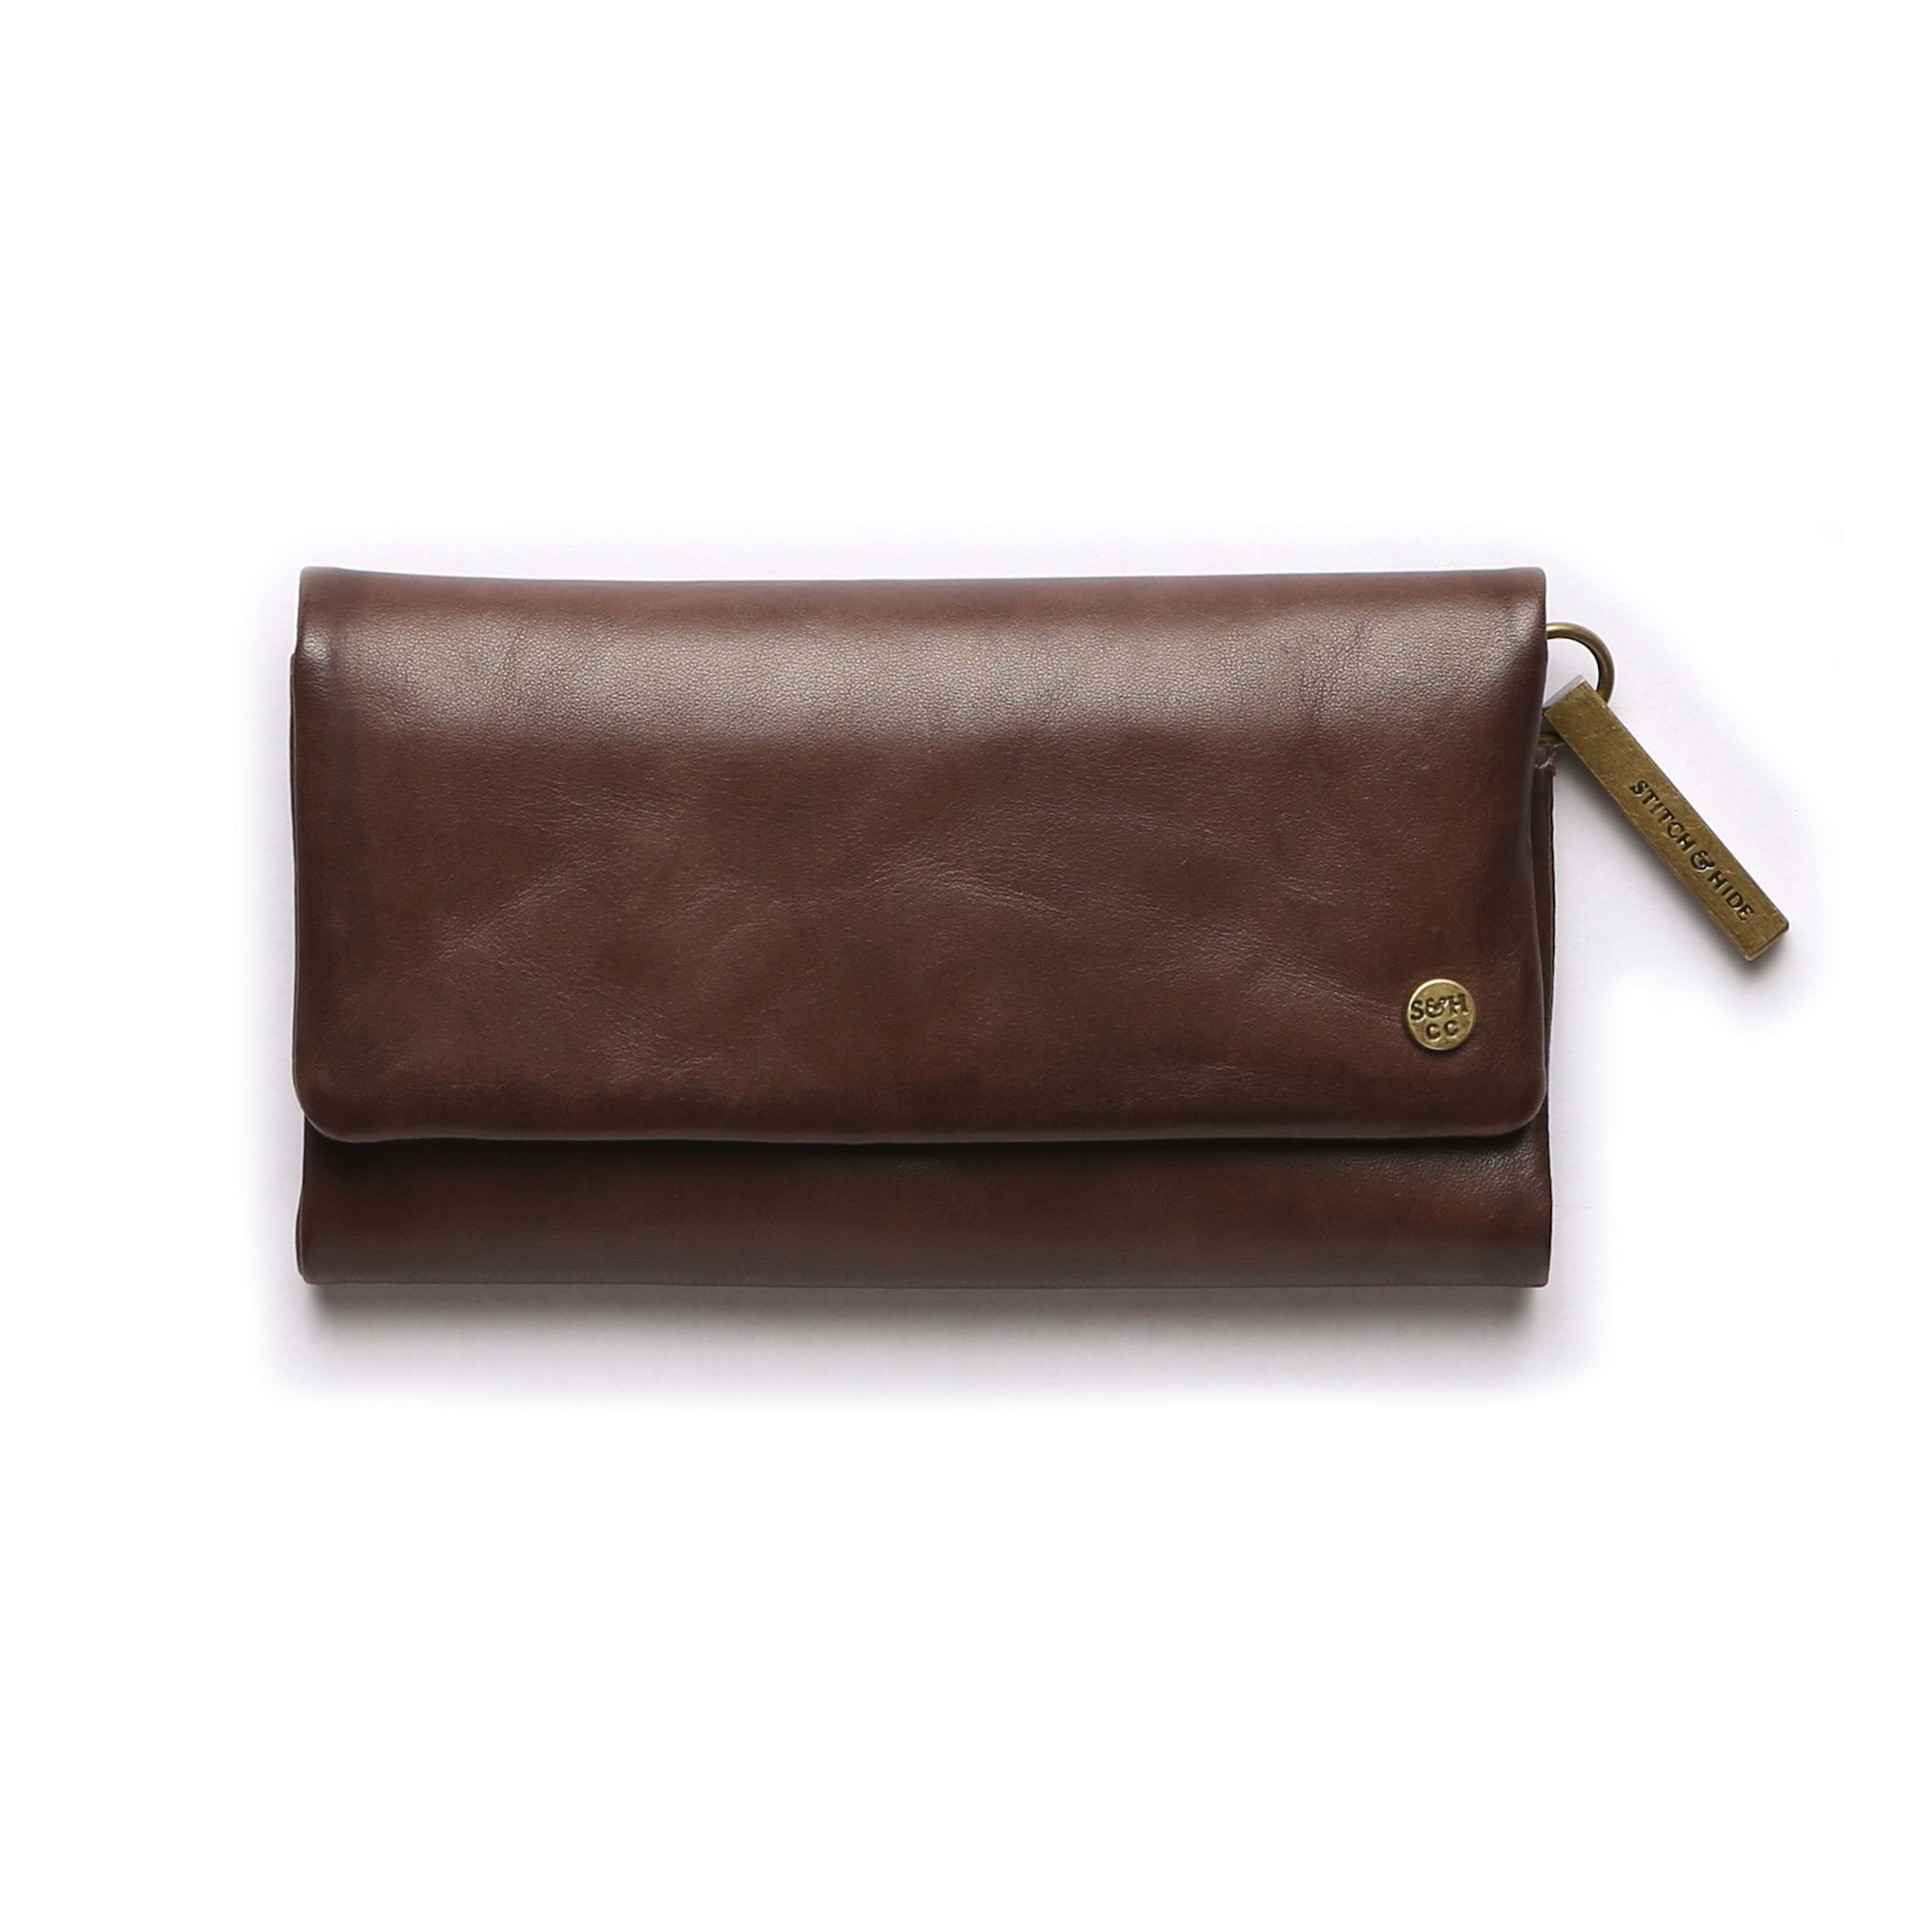 72dpi-21333953cf-SandH_PAIGET_WALLET_CHOCOLATE_FRONT